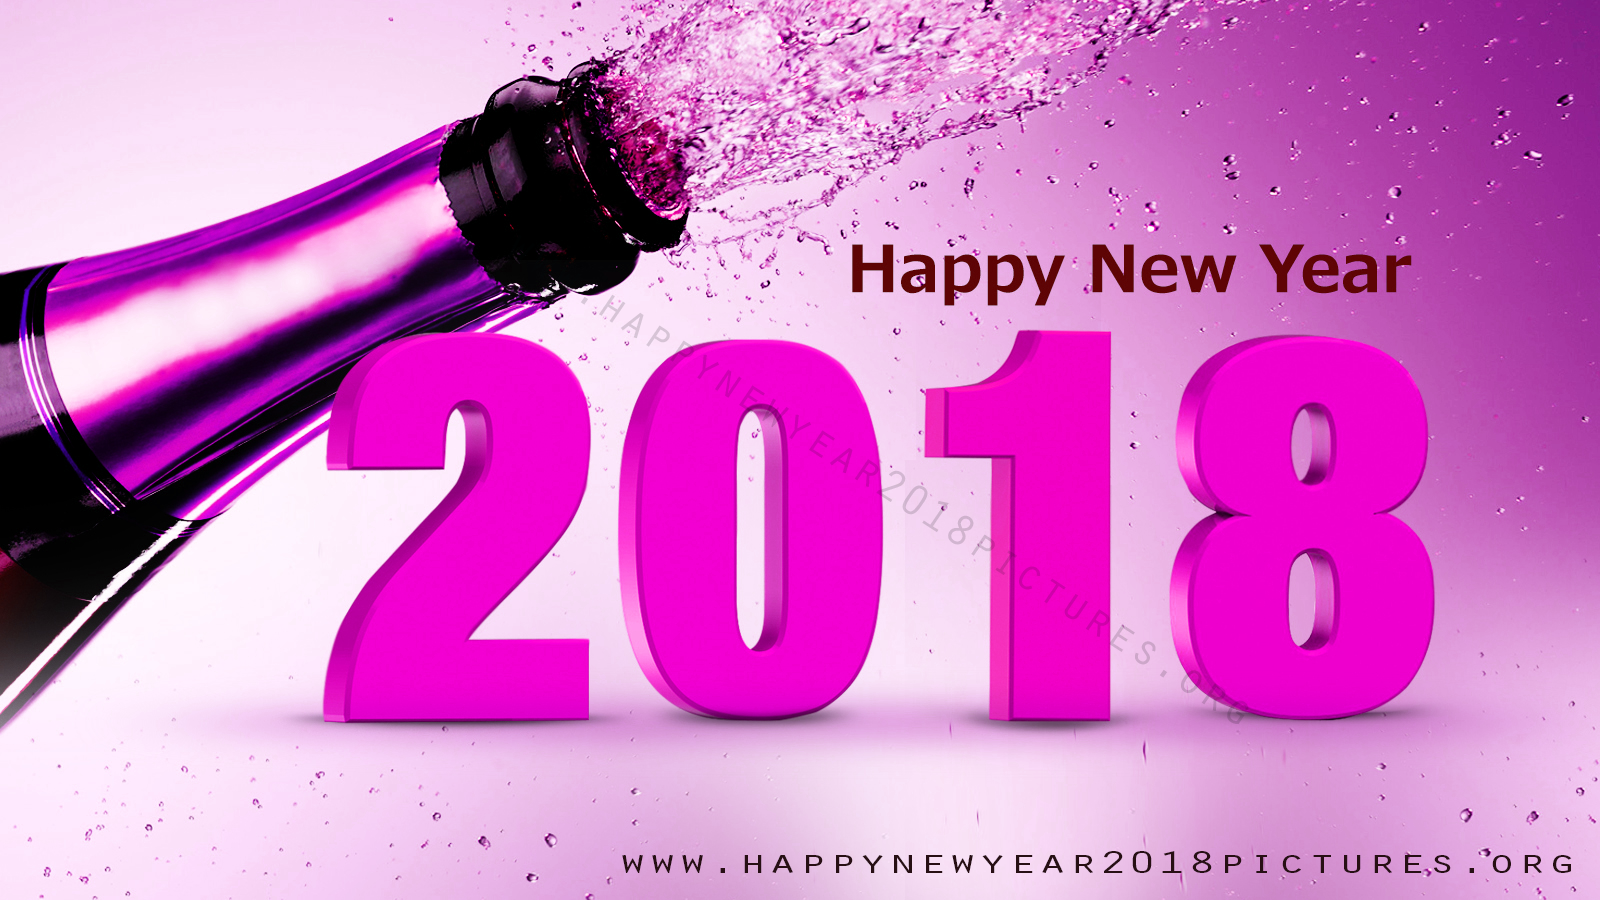 new year 2018 wishes greeting cards messages quotes for facebook